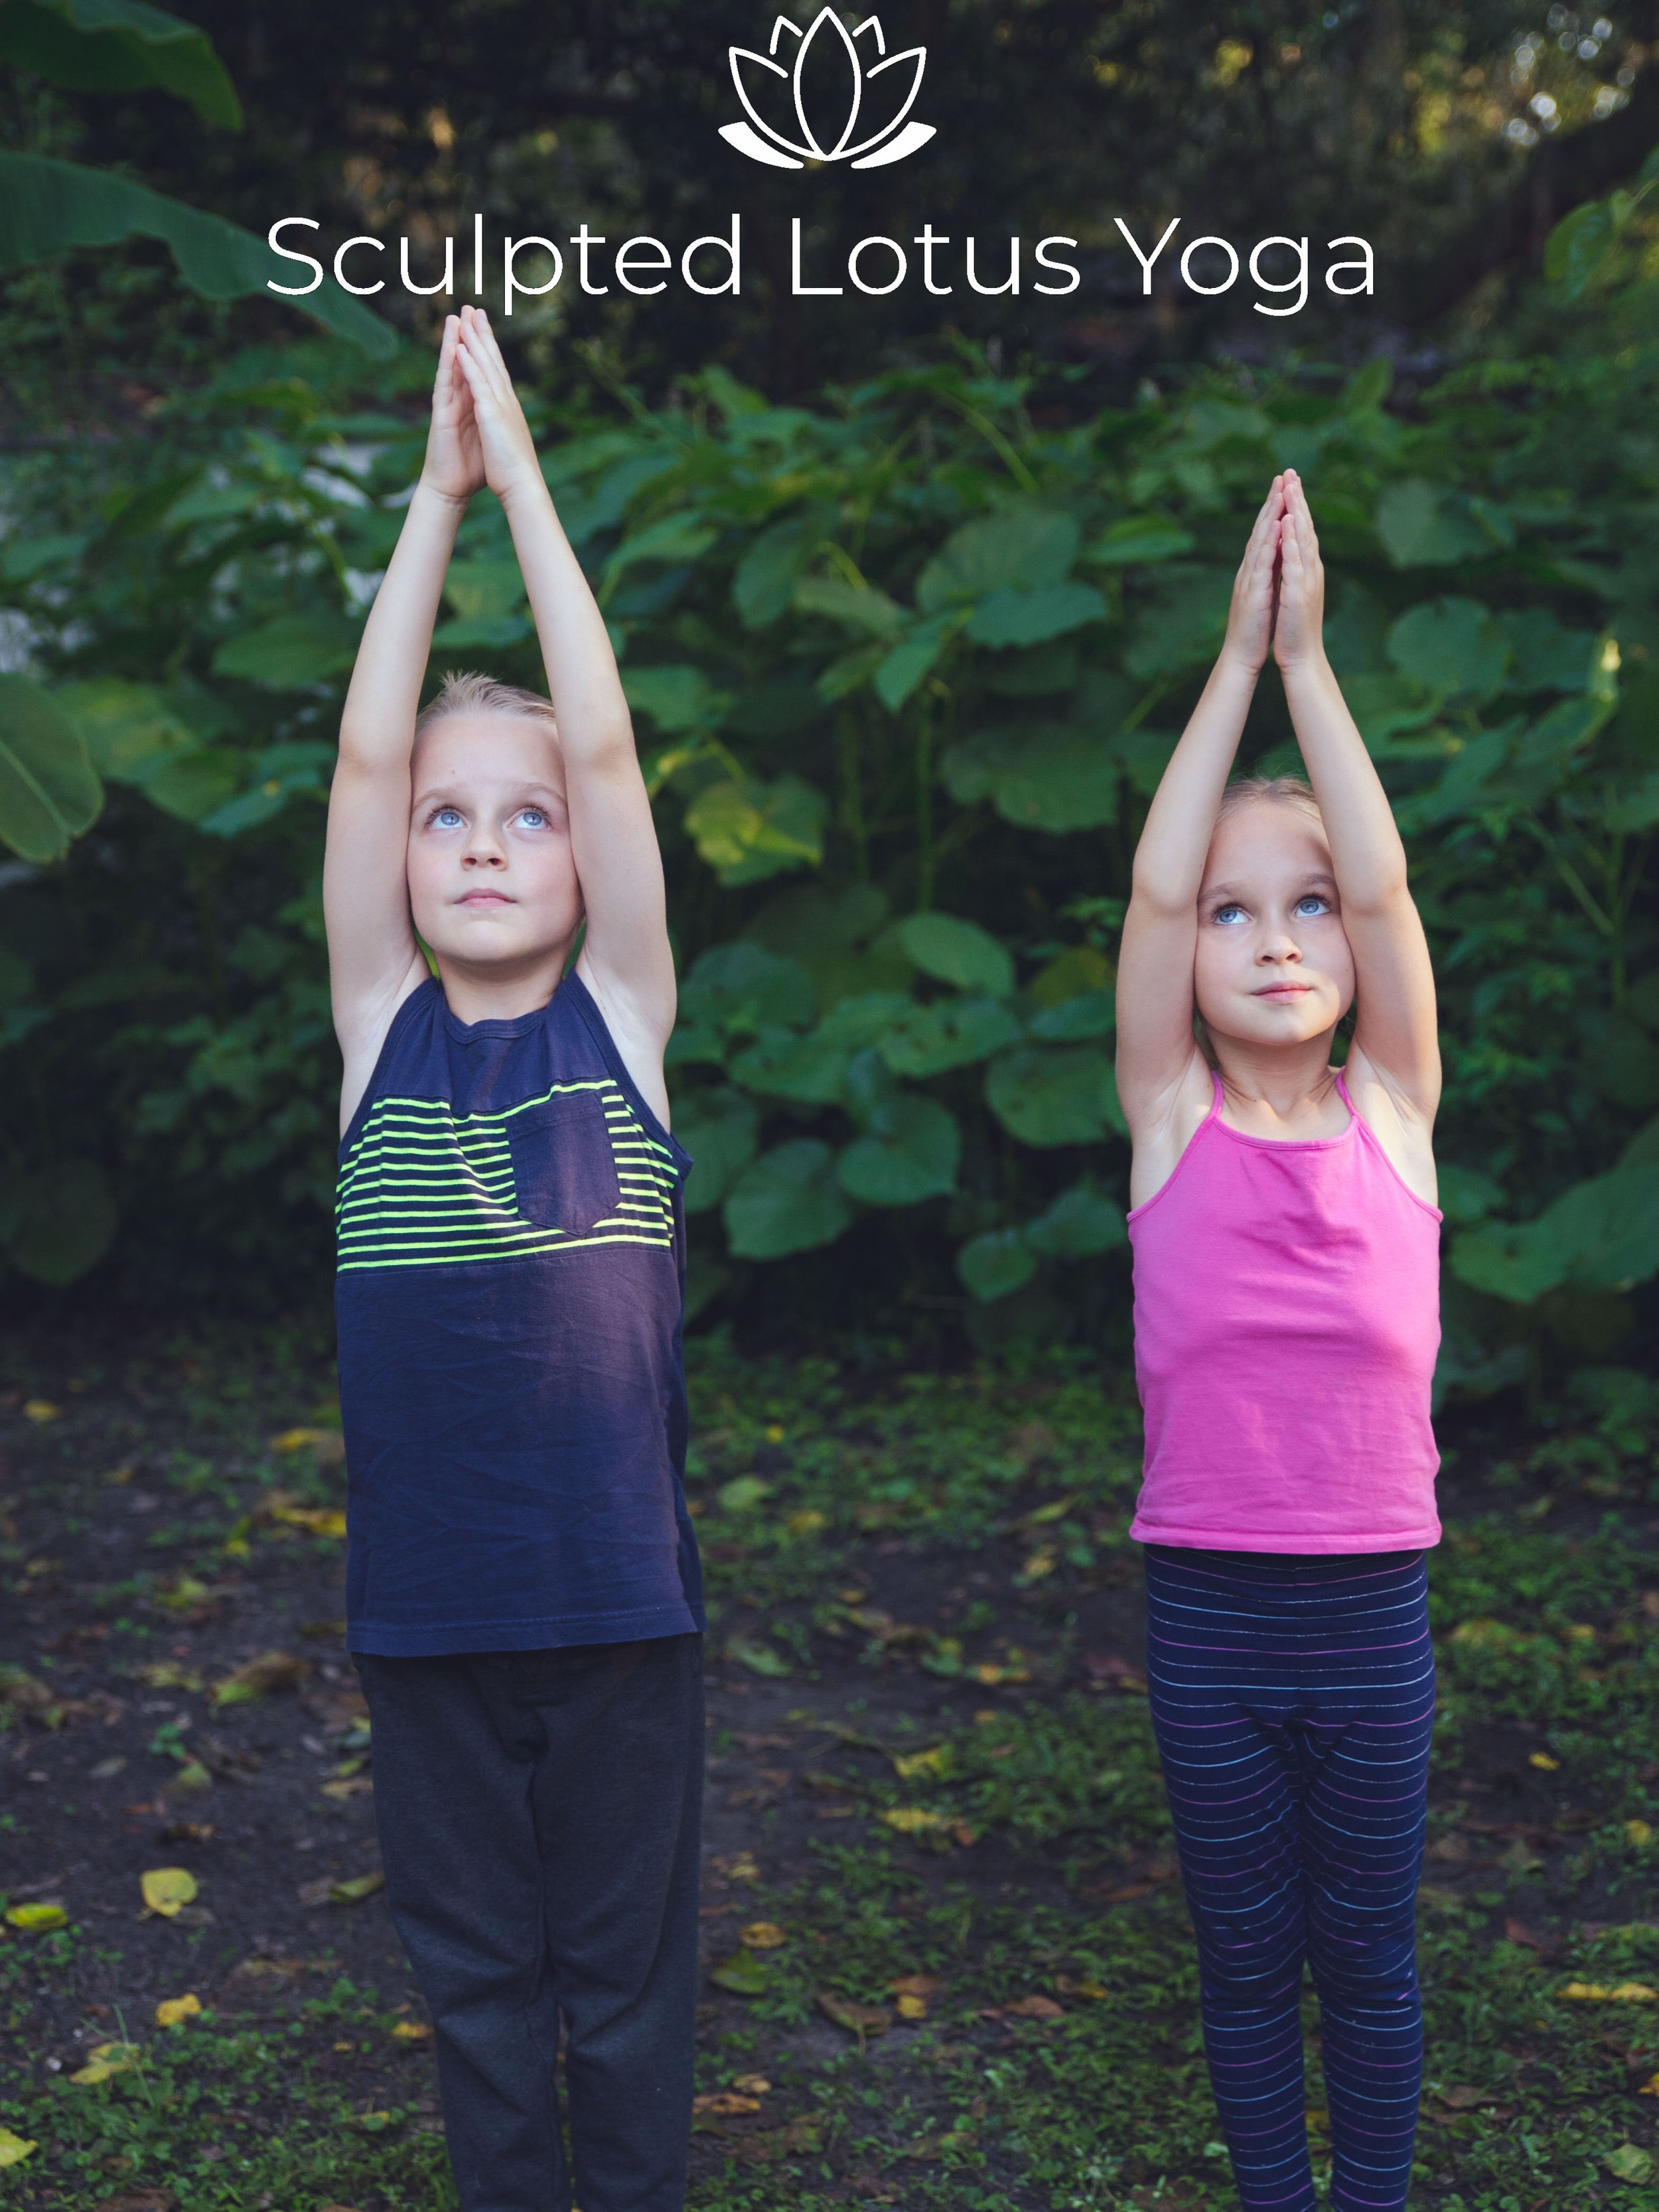 Kid's Yoga 5-10 years - Tuesdays 4:00- 5:00 pm June 4-25th - All 4 weeks: Early Bird $48 ($12.00 per class)/Week of $58 ($14.50 per class)/ $16 drop inTuesdays 4:00-5:00 pm July 9-30 - All 4 weeks: Early Bird $48 ($12.00 per class)/Week of $58 ($14.50 per class)/ $16 drop in(Sign up for all 8 weeks prior to the start of classes for $80!)Sign up down below!Sculpted Lotus Yoga does not offer make-up classes, the kids classes are non refundable but are transferable to a friend in the event that you must miss a class.